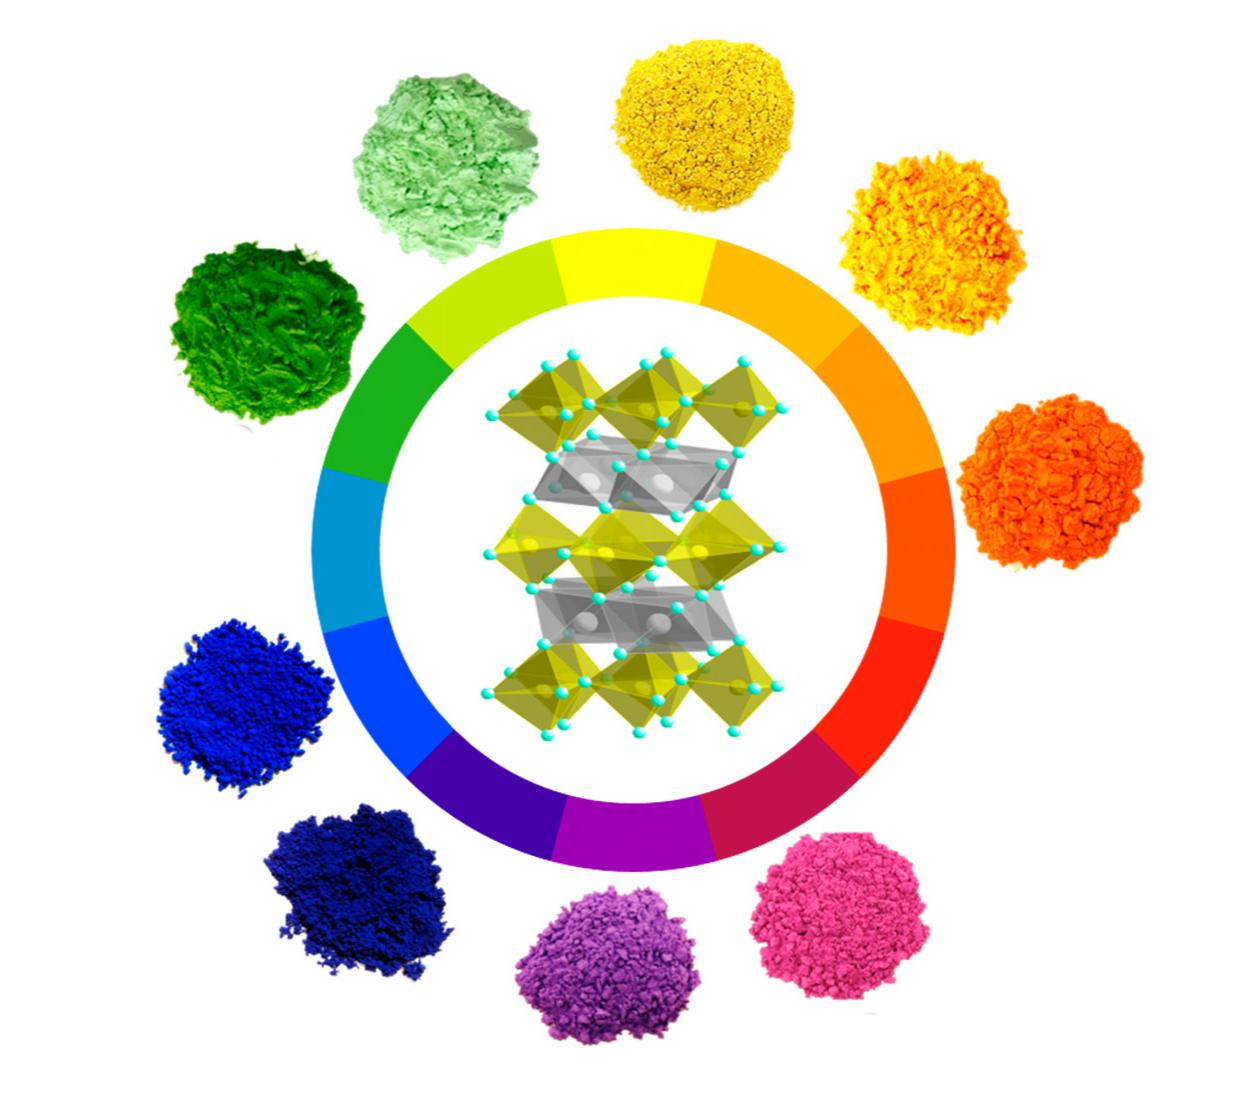 pigments of color surrounding color wheel in OSU color palette